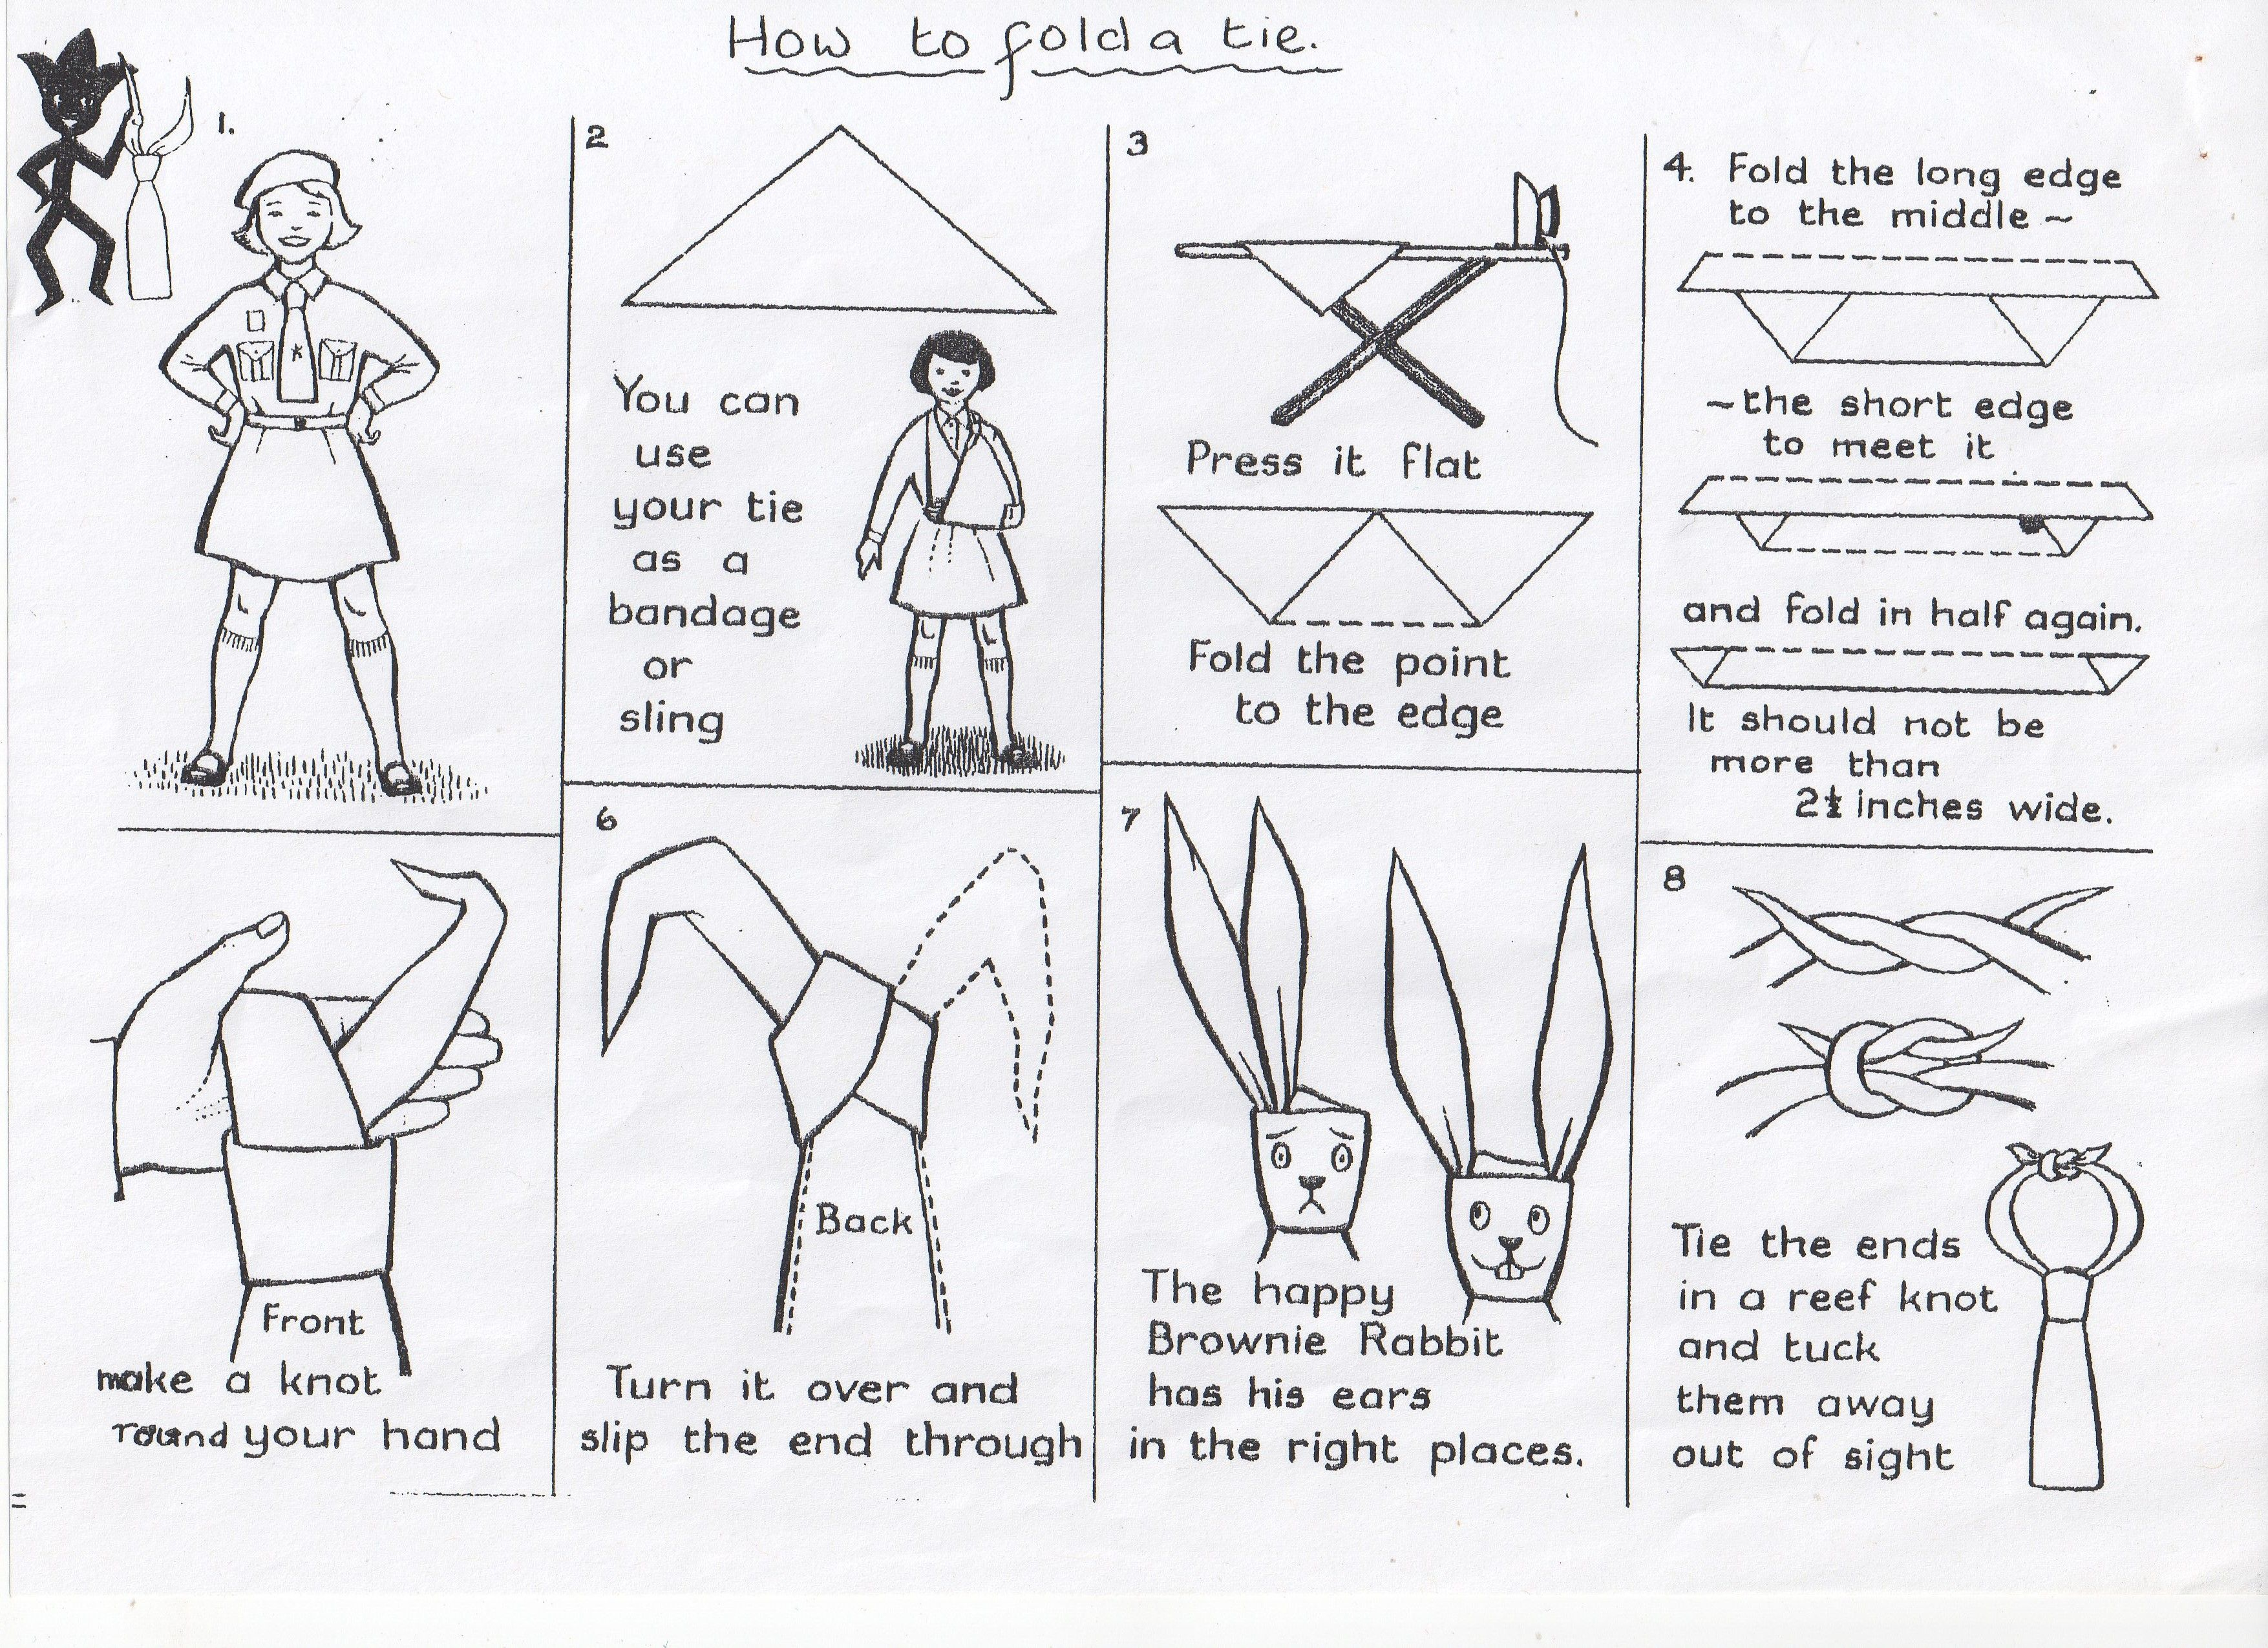 How To Tie Your Tie! A Chart From The 1950's Or 1960's Brownies, Cute